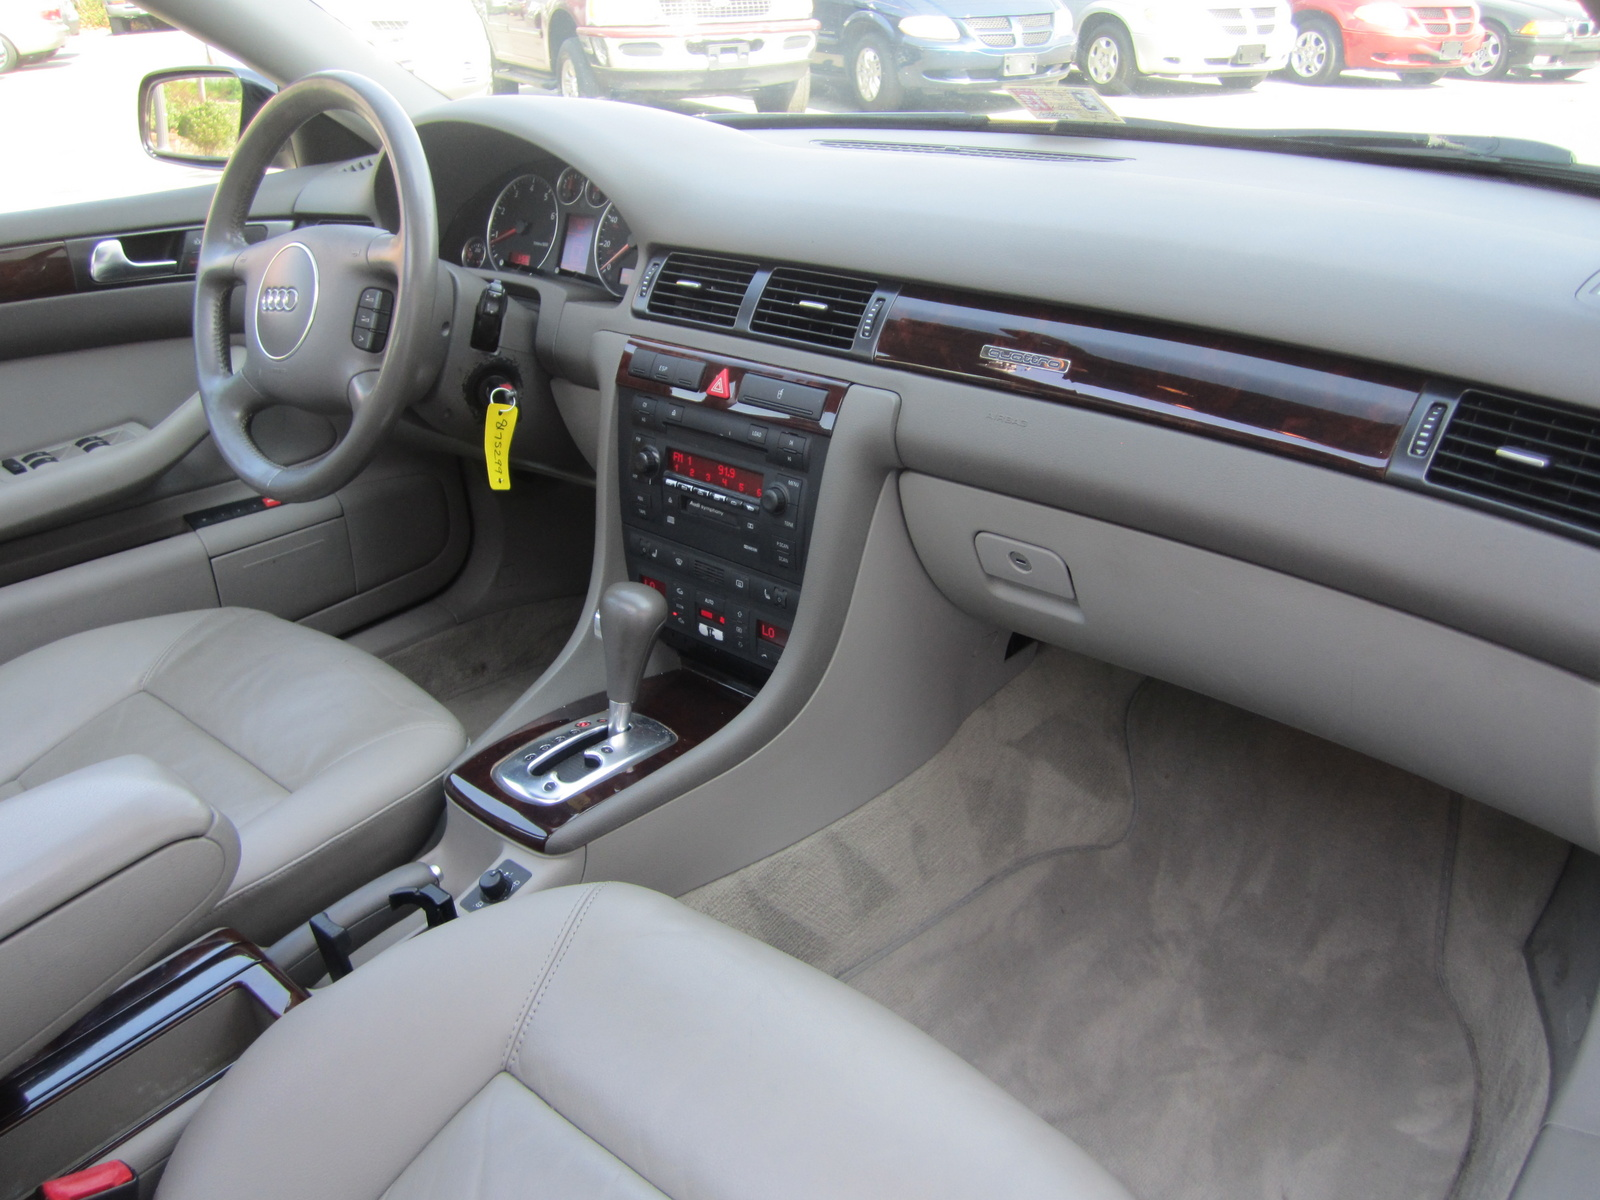 2003 audi a4 quattro used reviews autos post. Black Bedroom Furniture Sets. Home Design Ideas